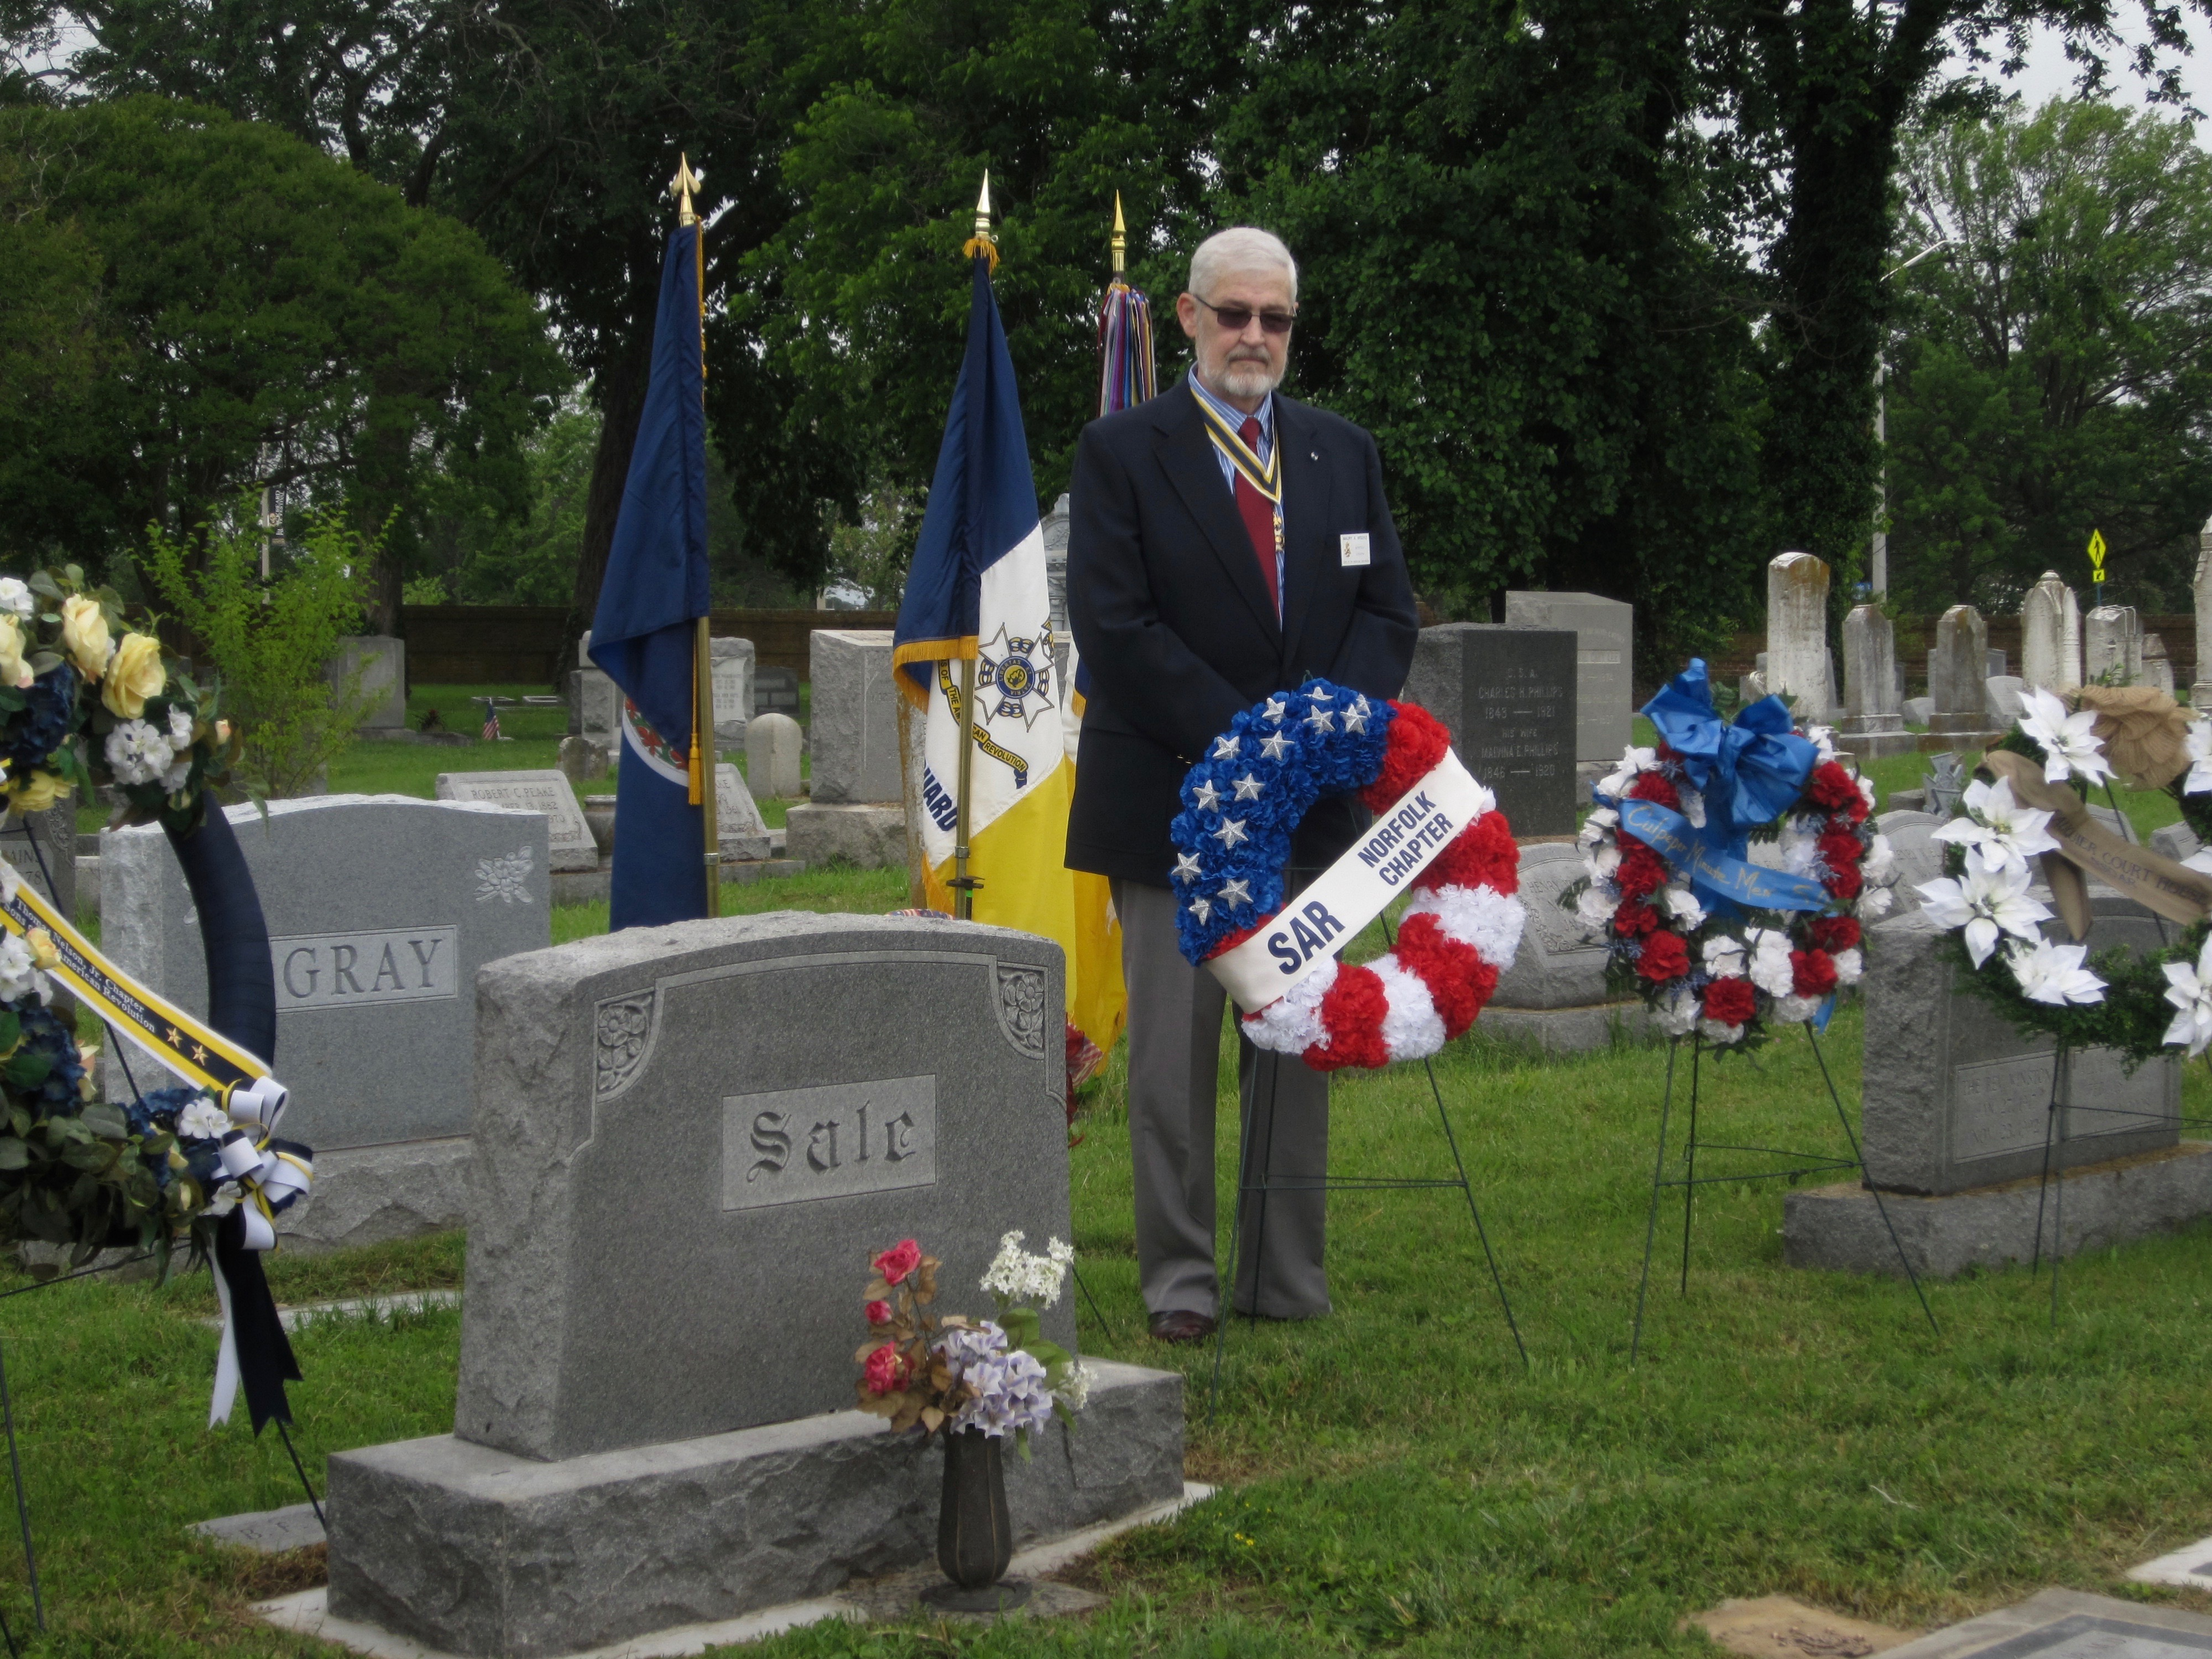 Norfolk Chapter SAR President Maury Weeks presents the Chapter wreath at the grave of Compatriot Thomas W. Sale, Jr